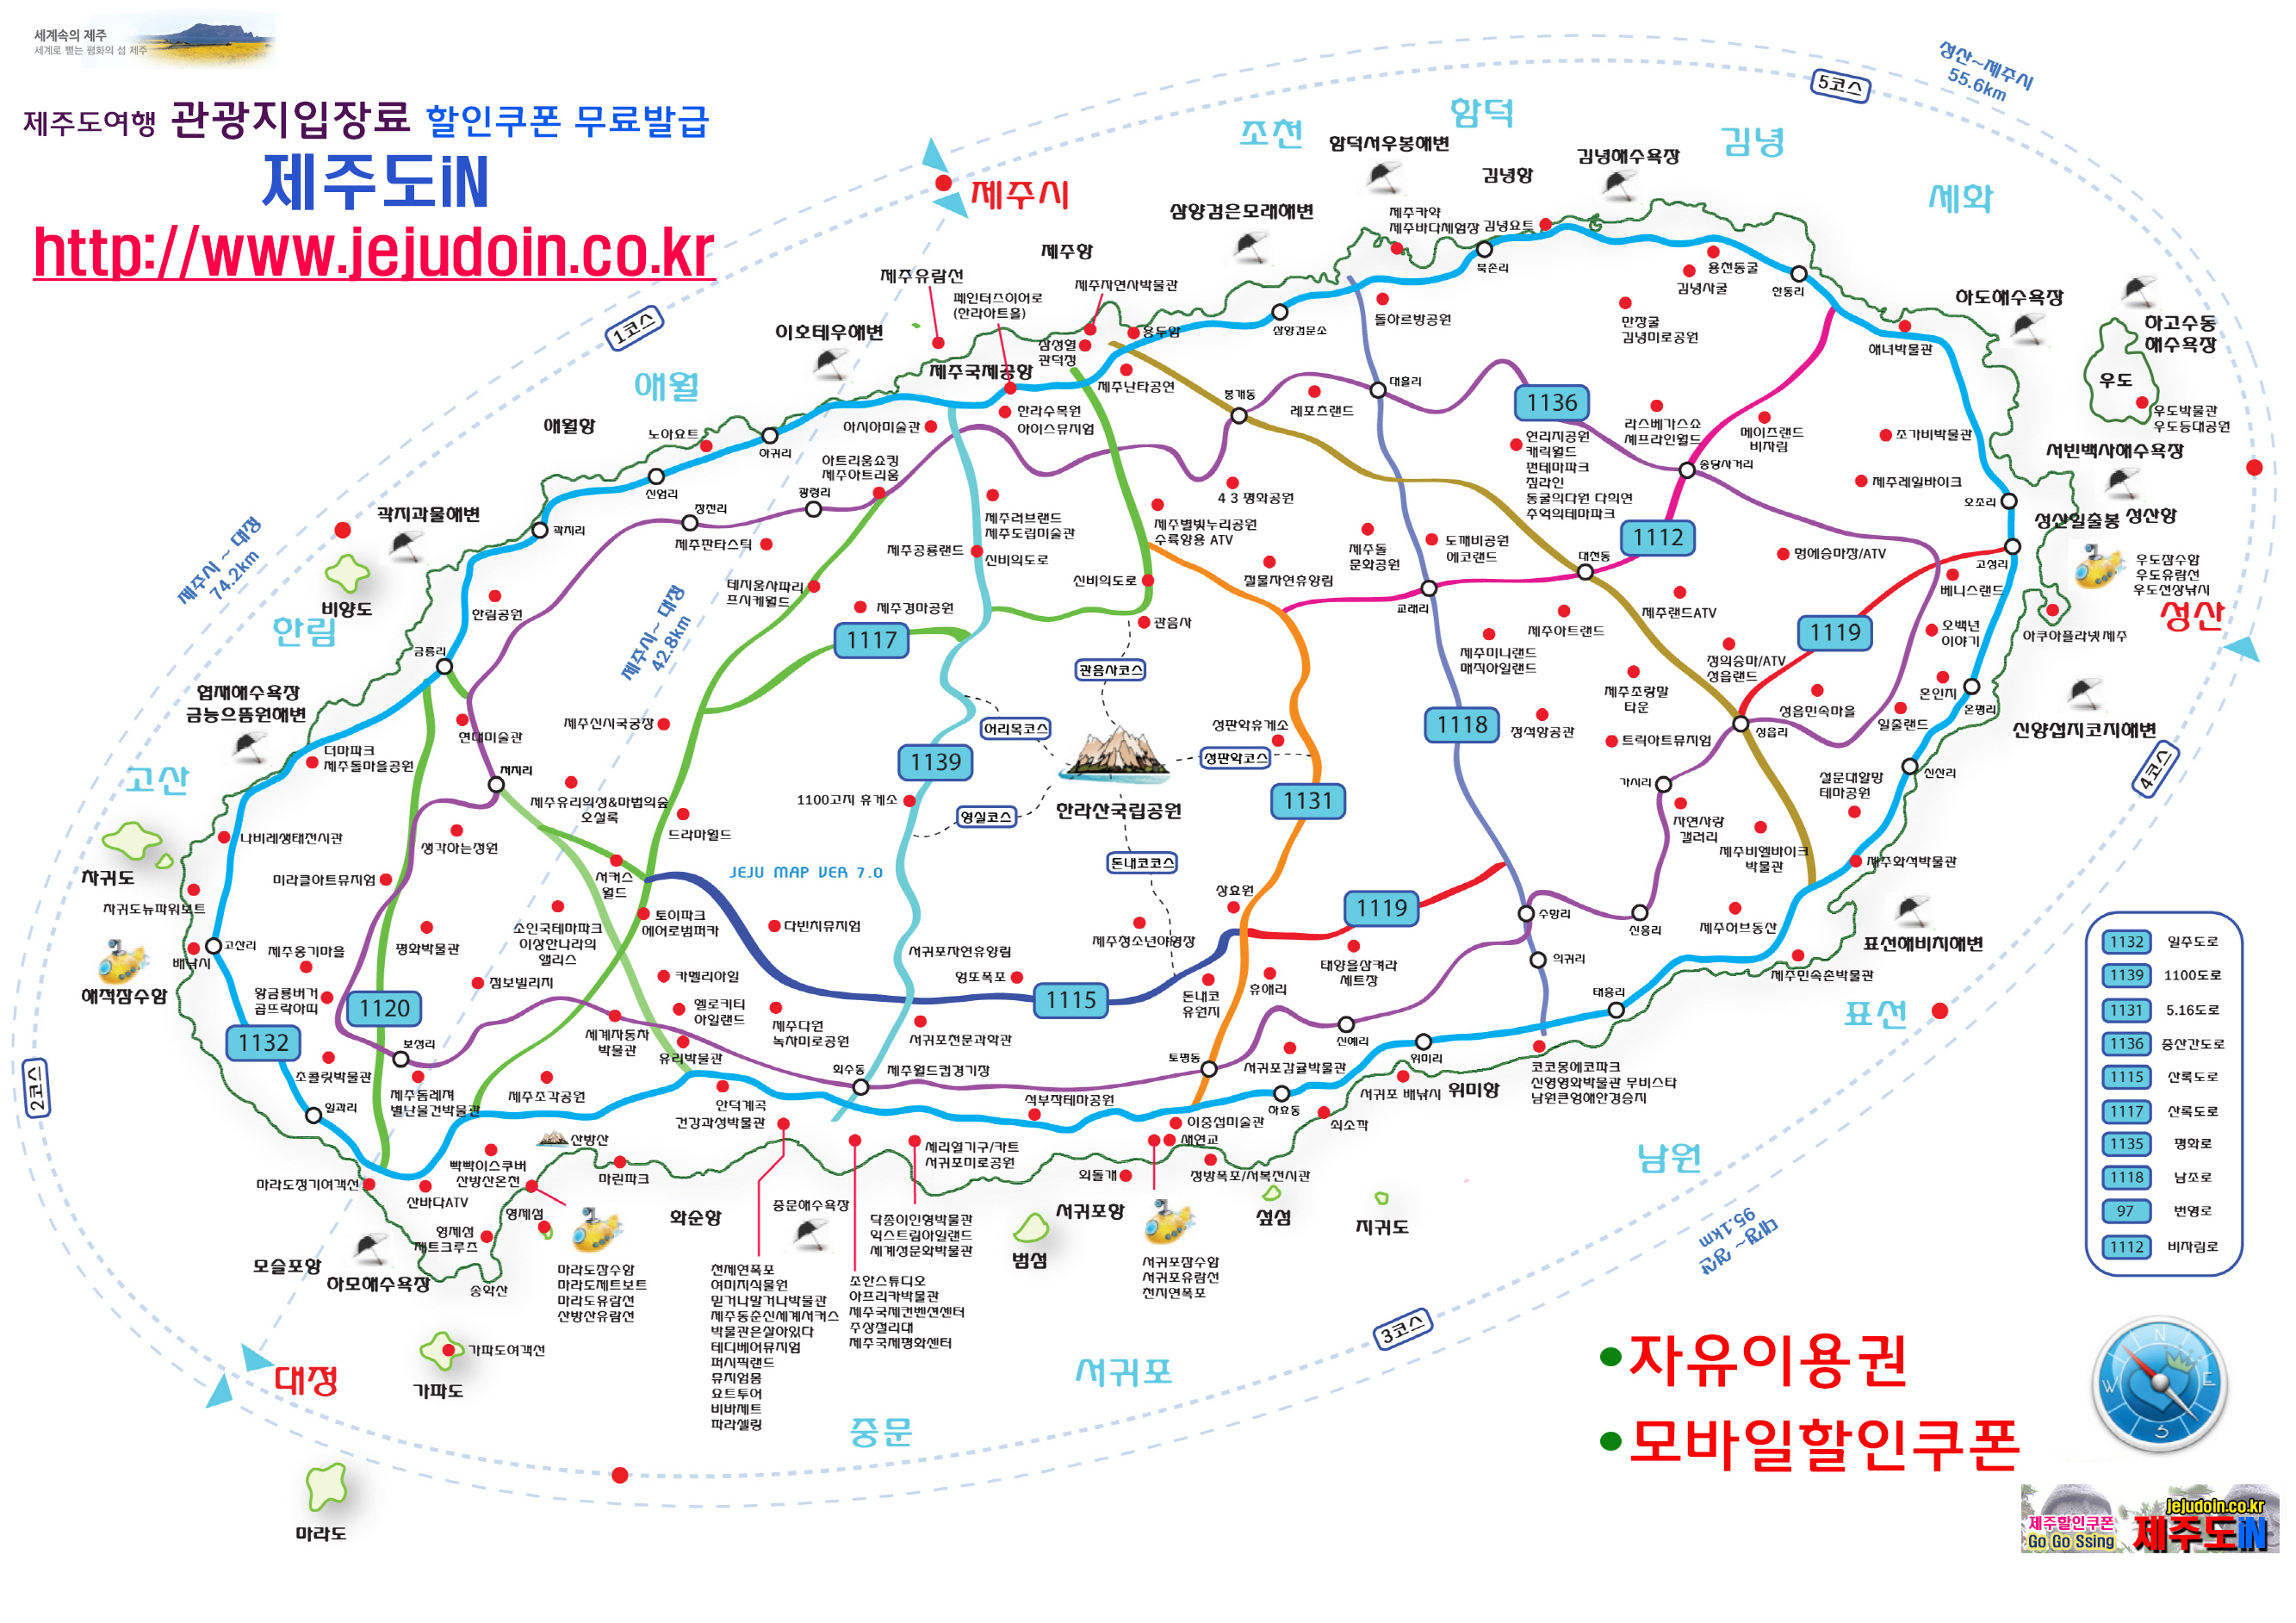 jejutour_map.jpg